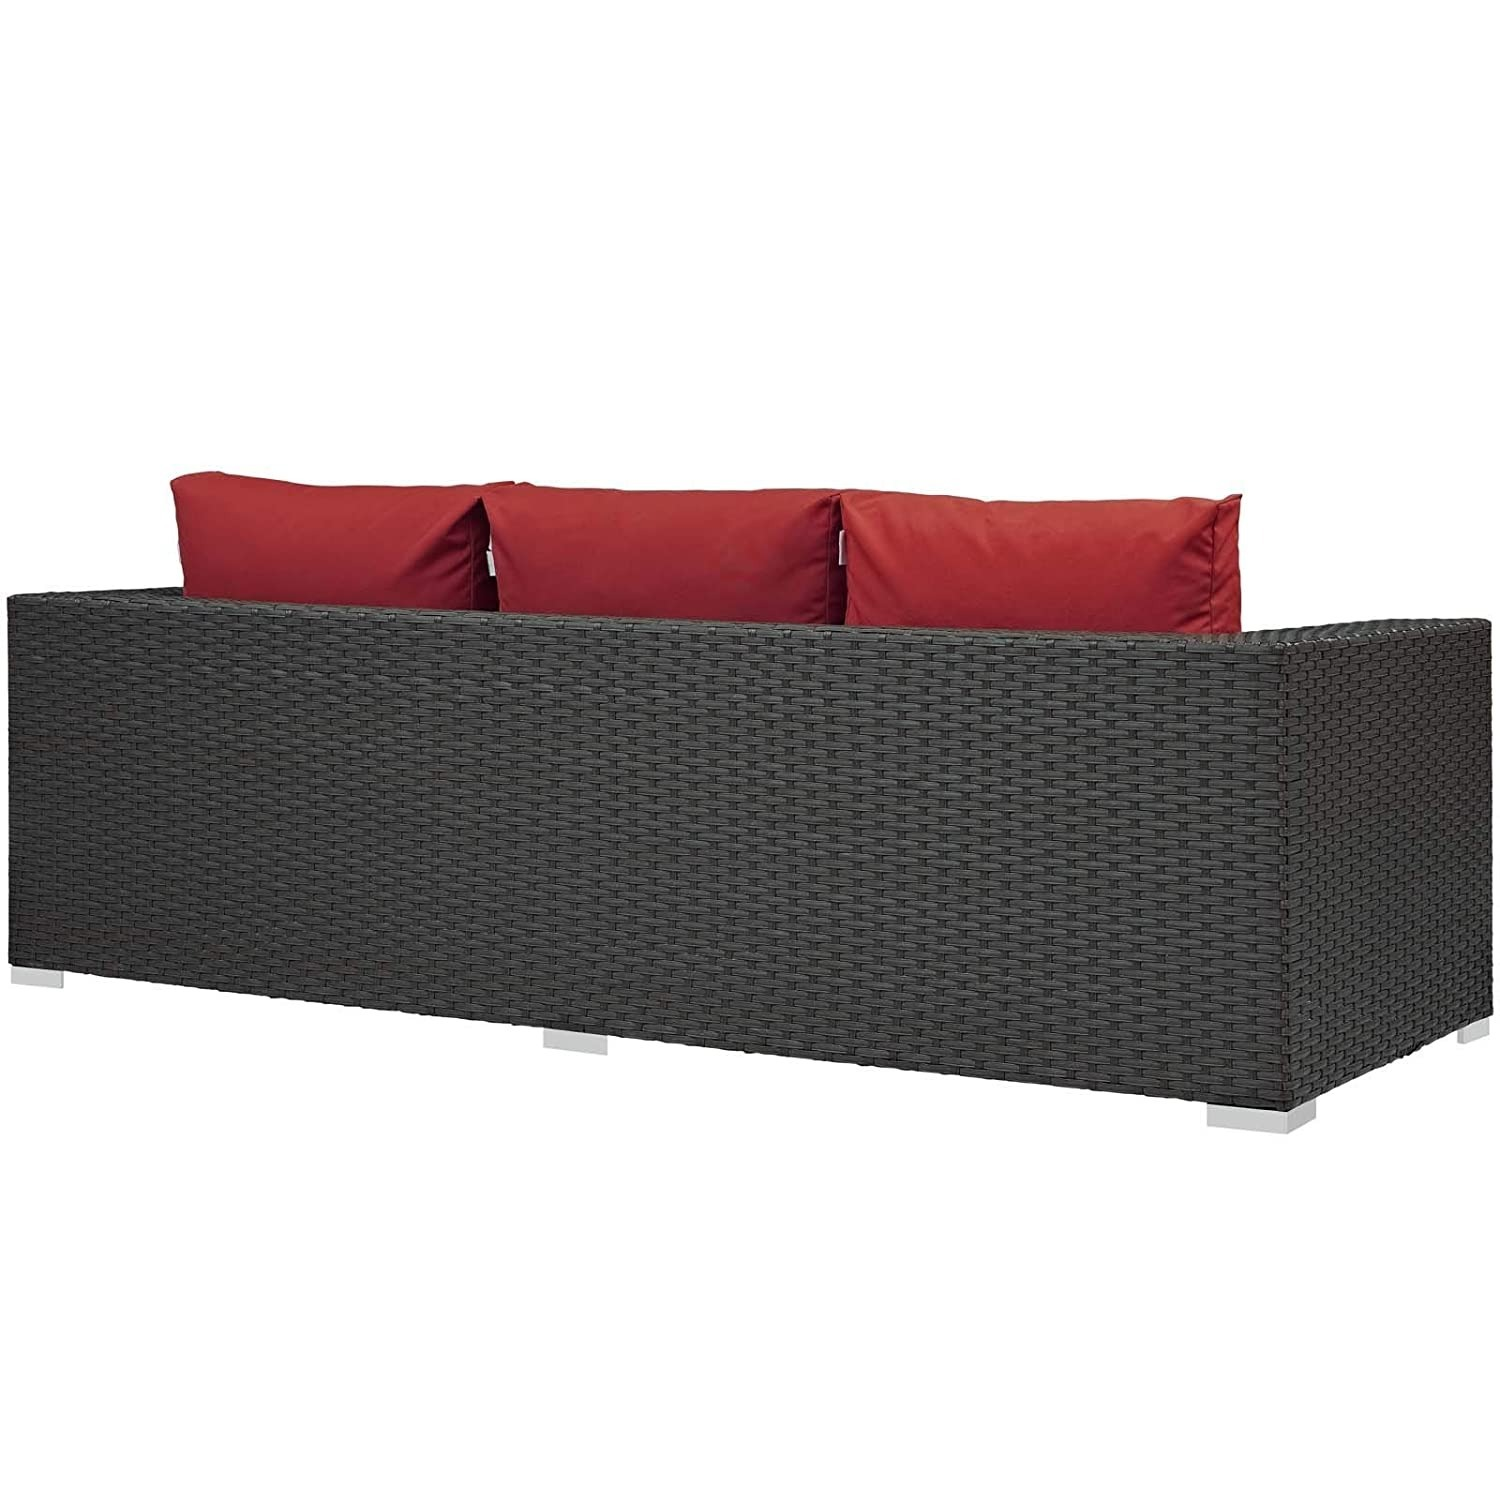 Outdoor Sofa In Rattan Weave Finish W/ Red Cushion - image-2